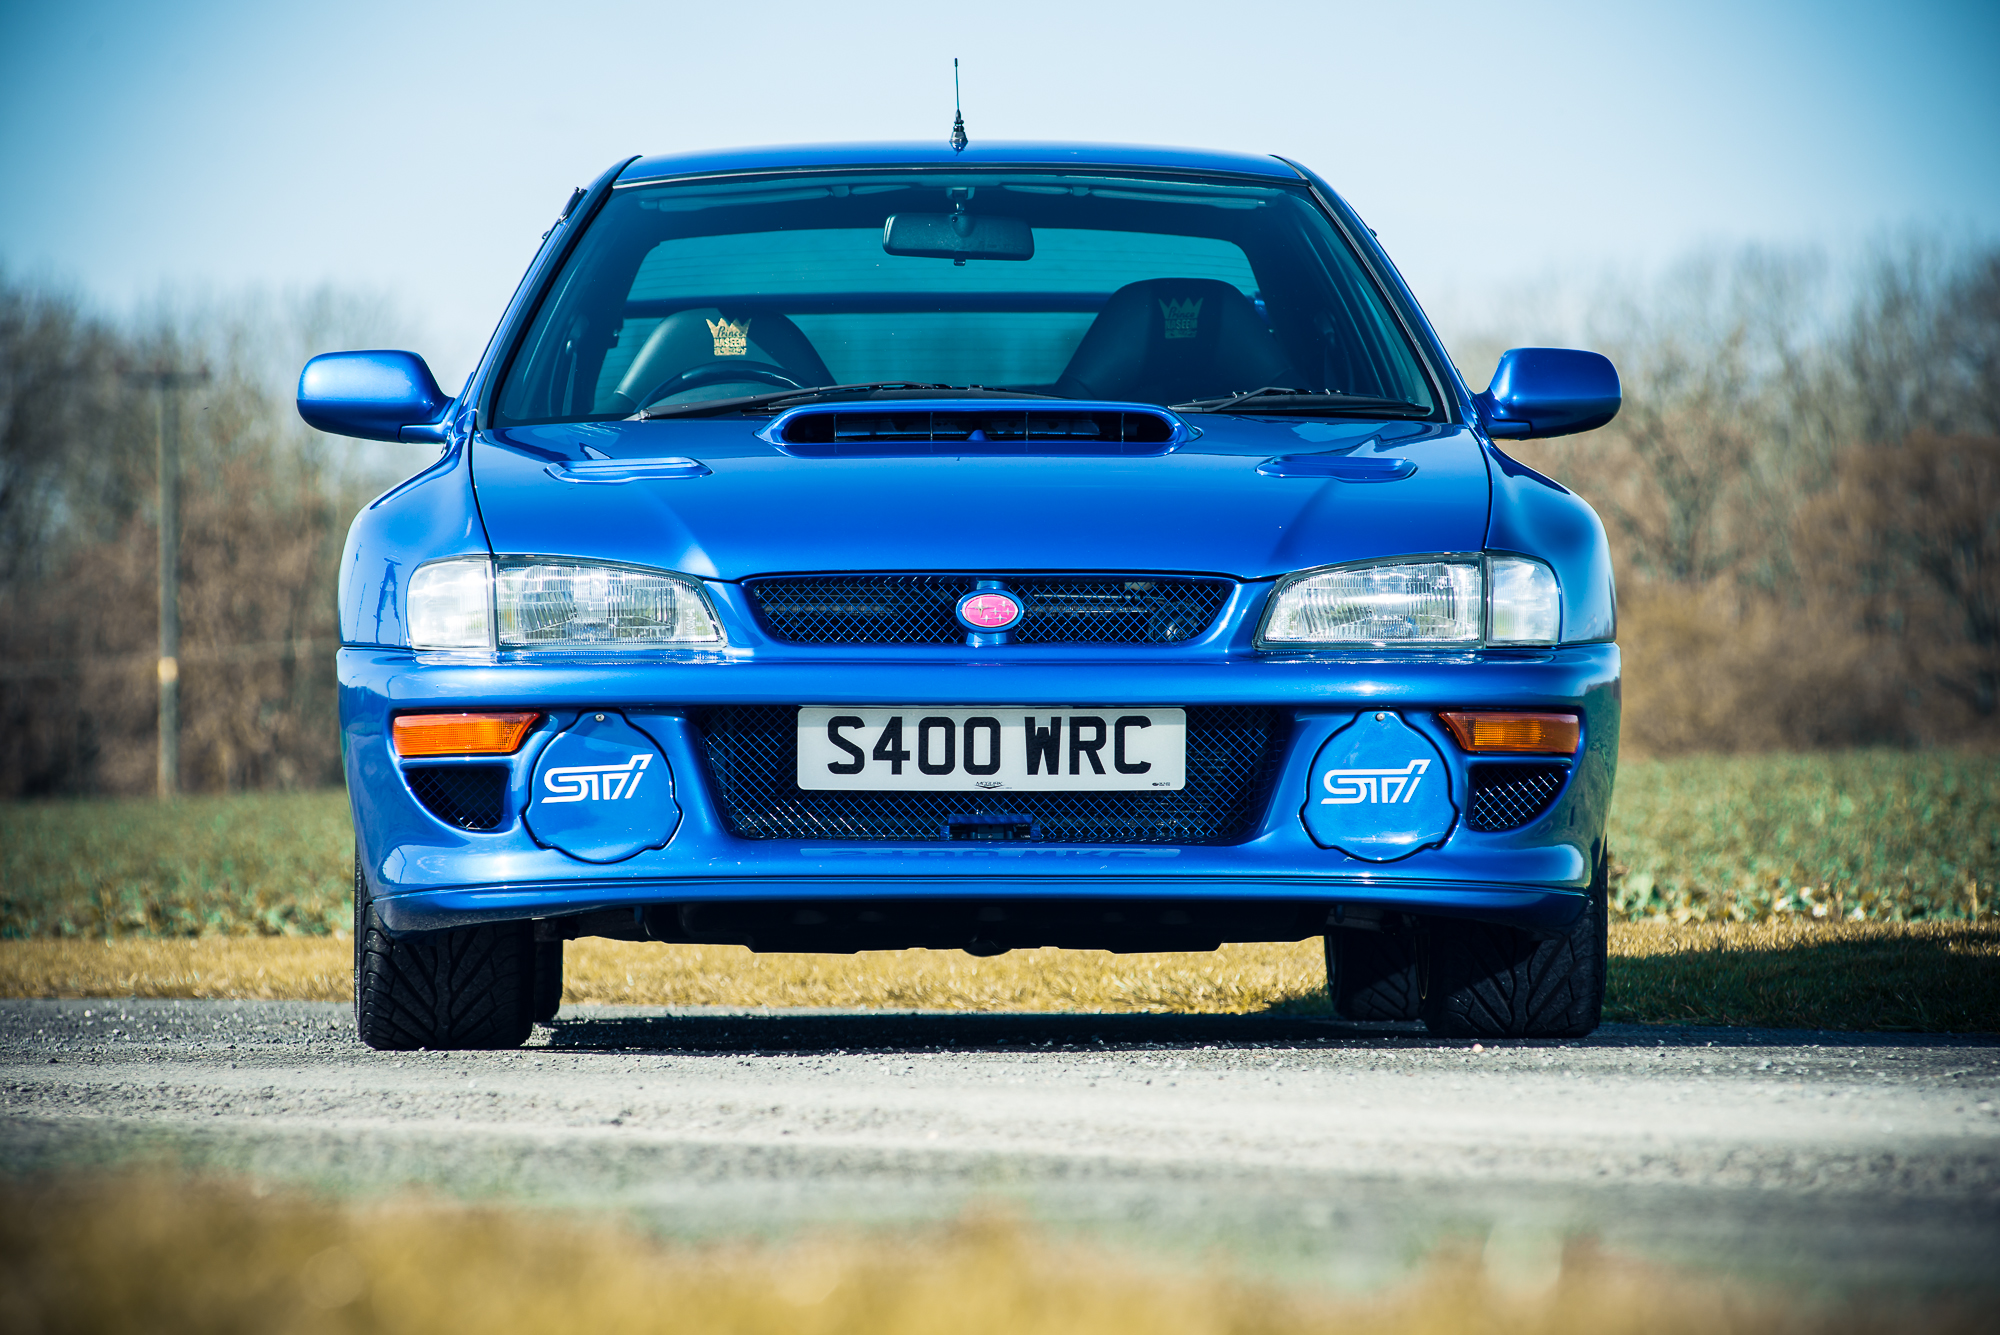 Rising fun: five of the greatest JDM performance cars